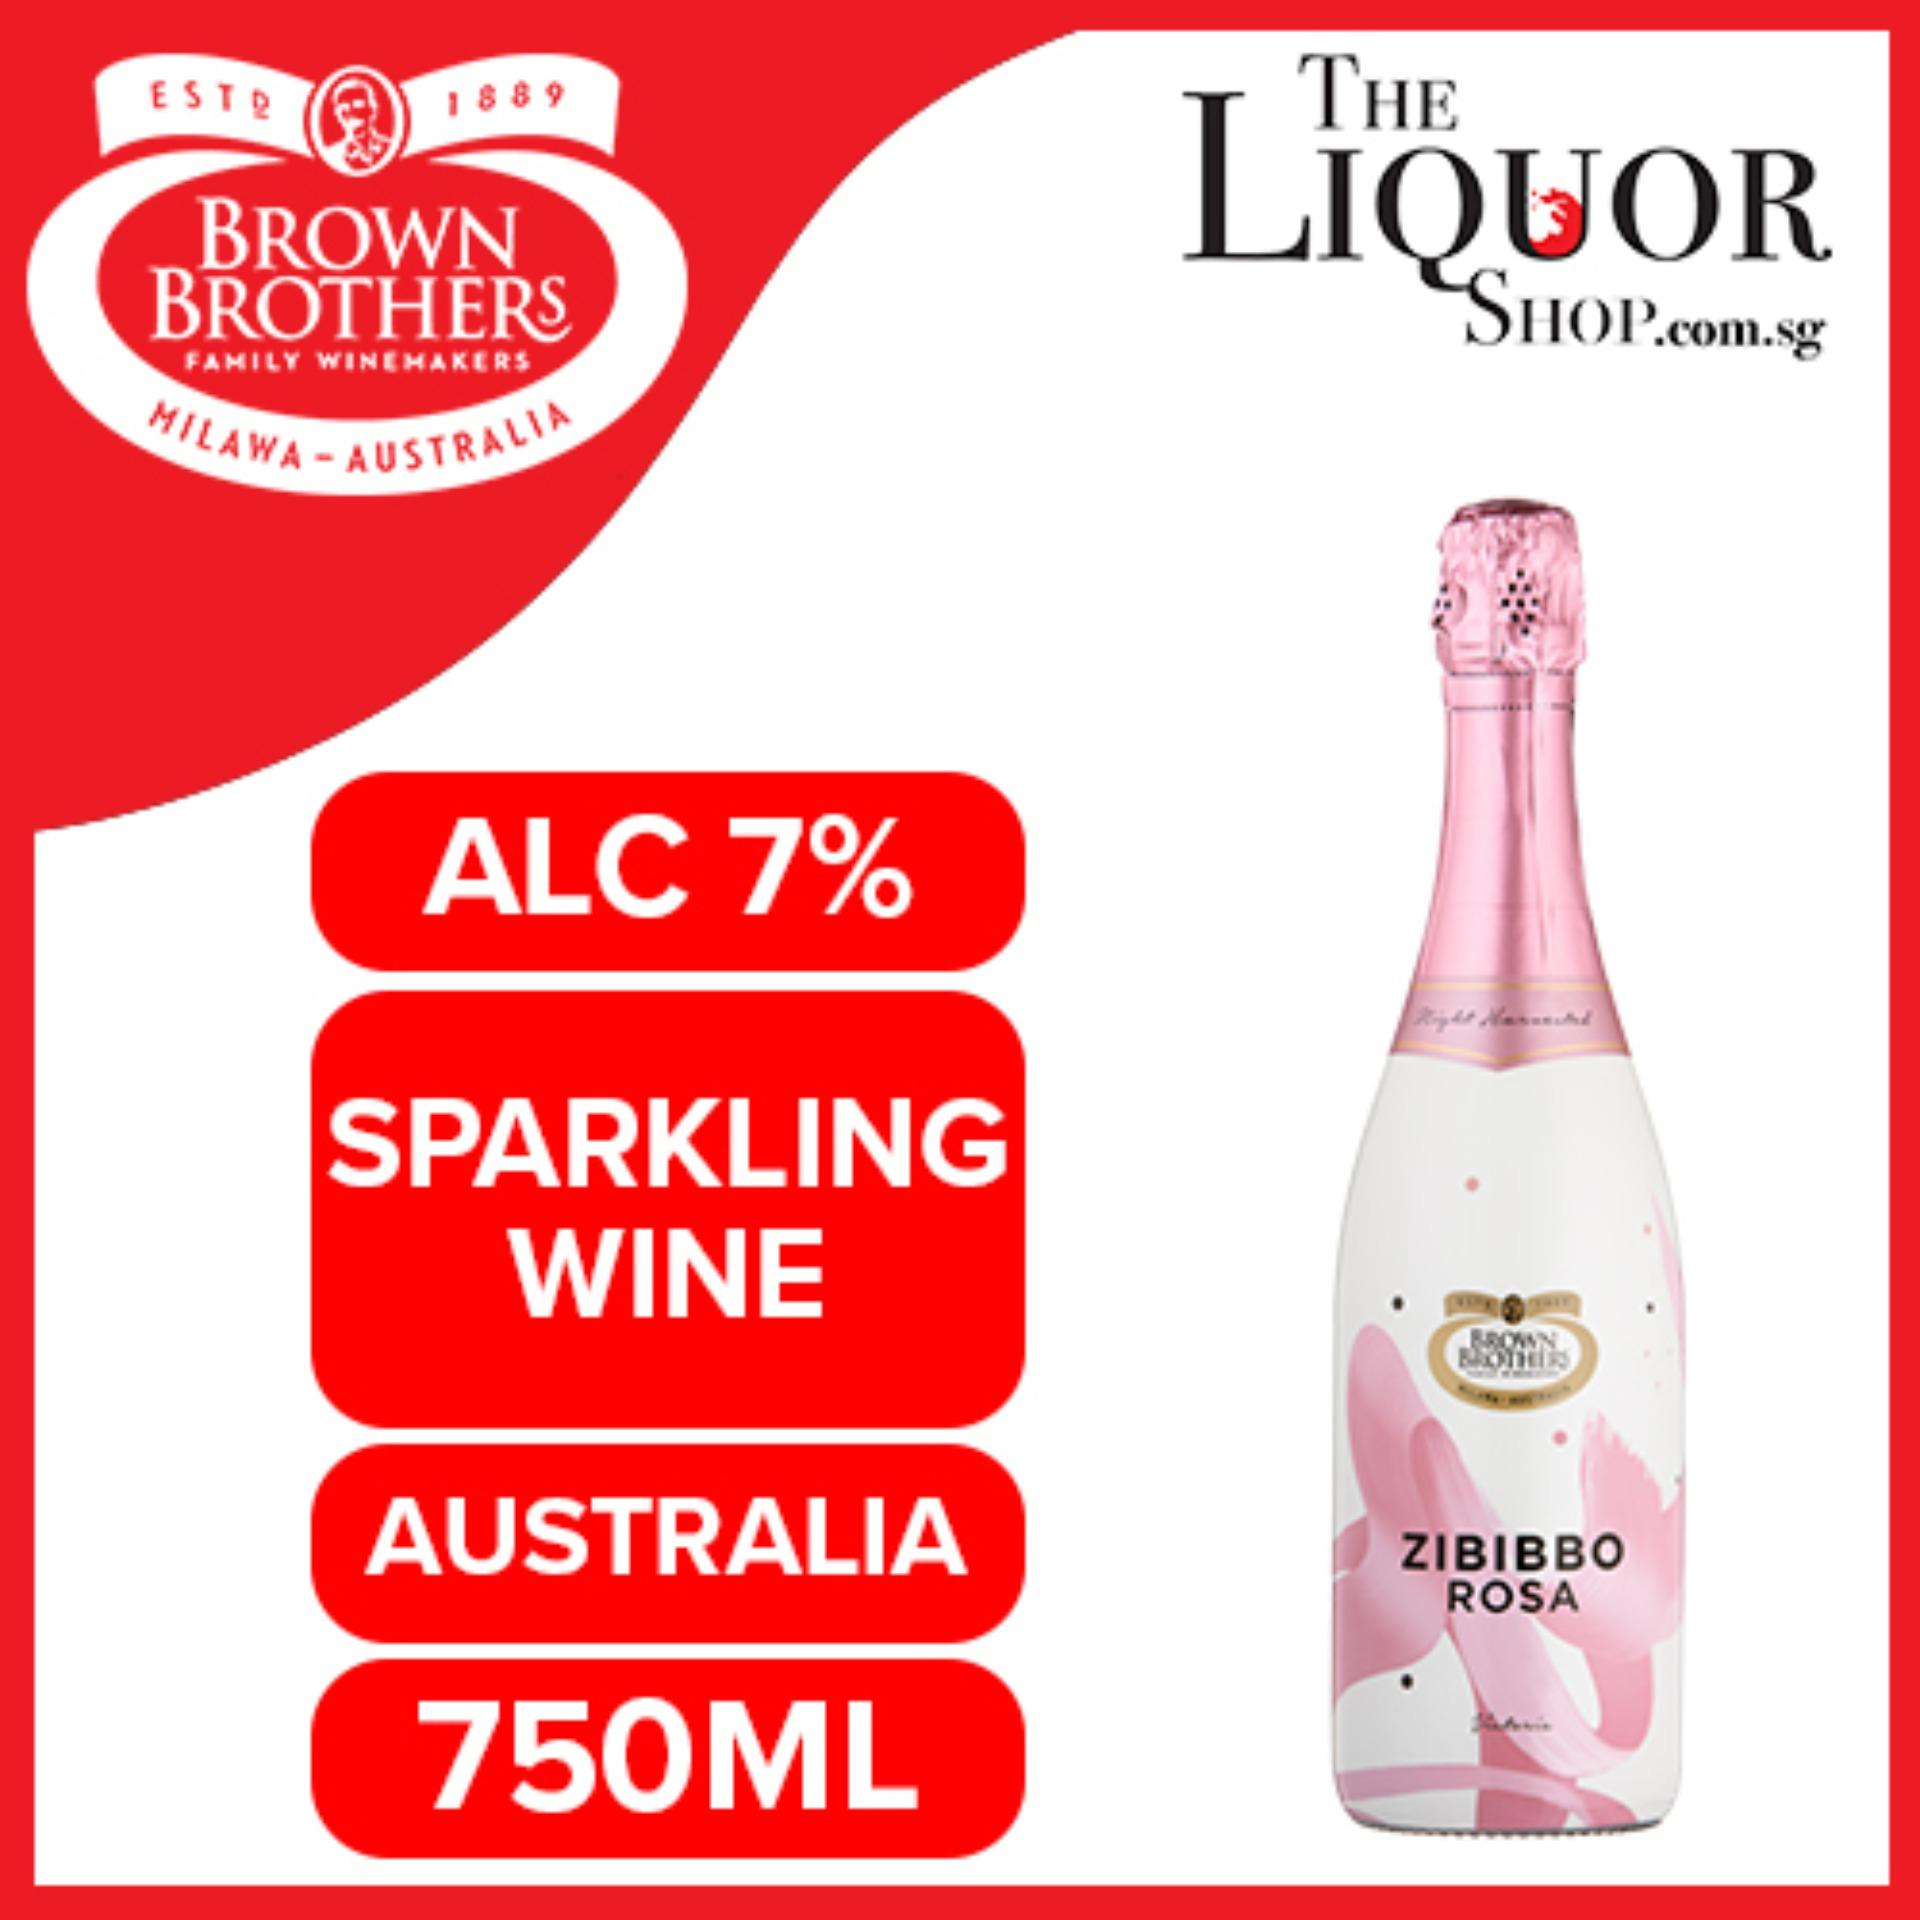 Brown Brothers Zibibbo Rosa 750ml By The Liquor Shop.